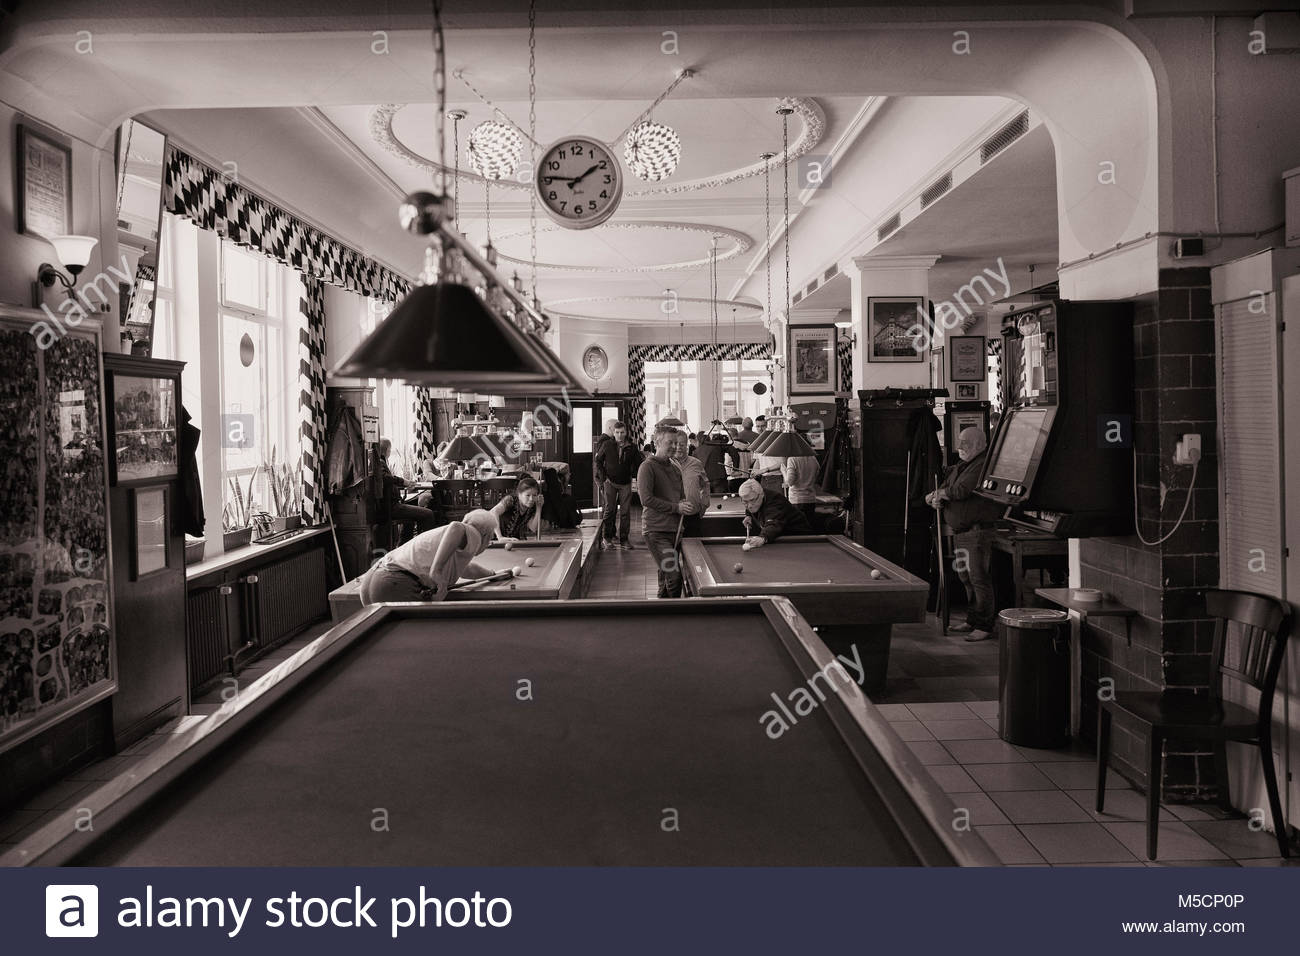 People playing pool in pool hall bar pub snooker - Stock Image